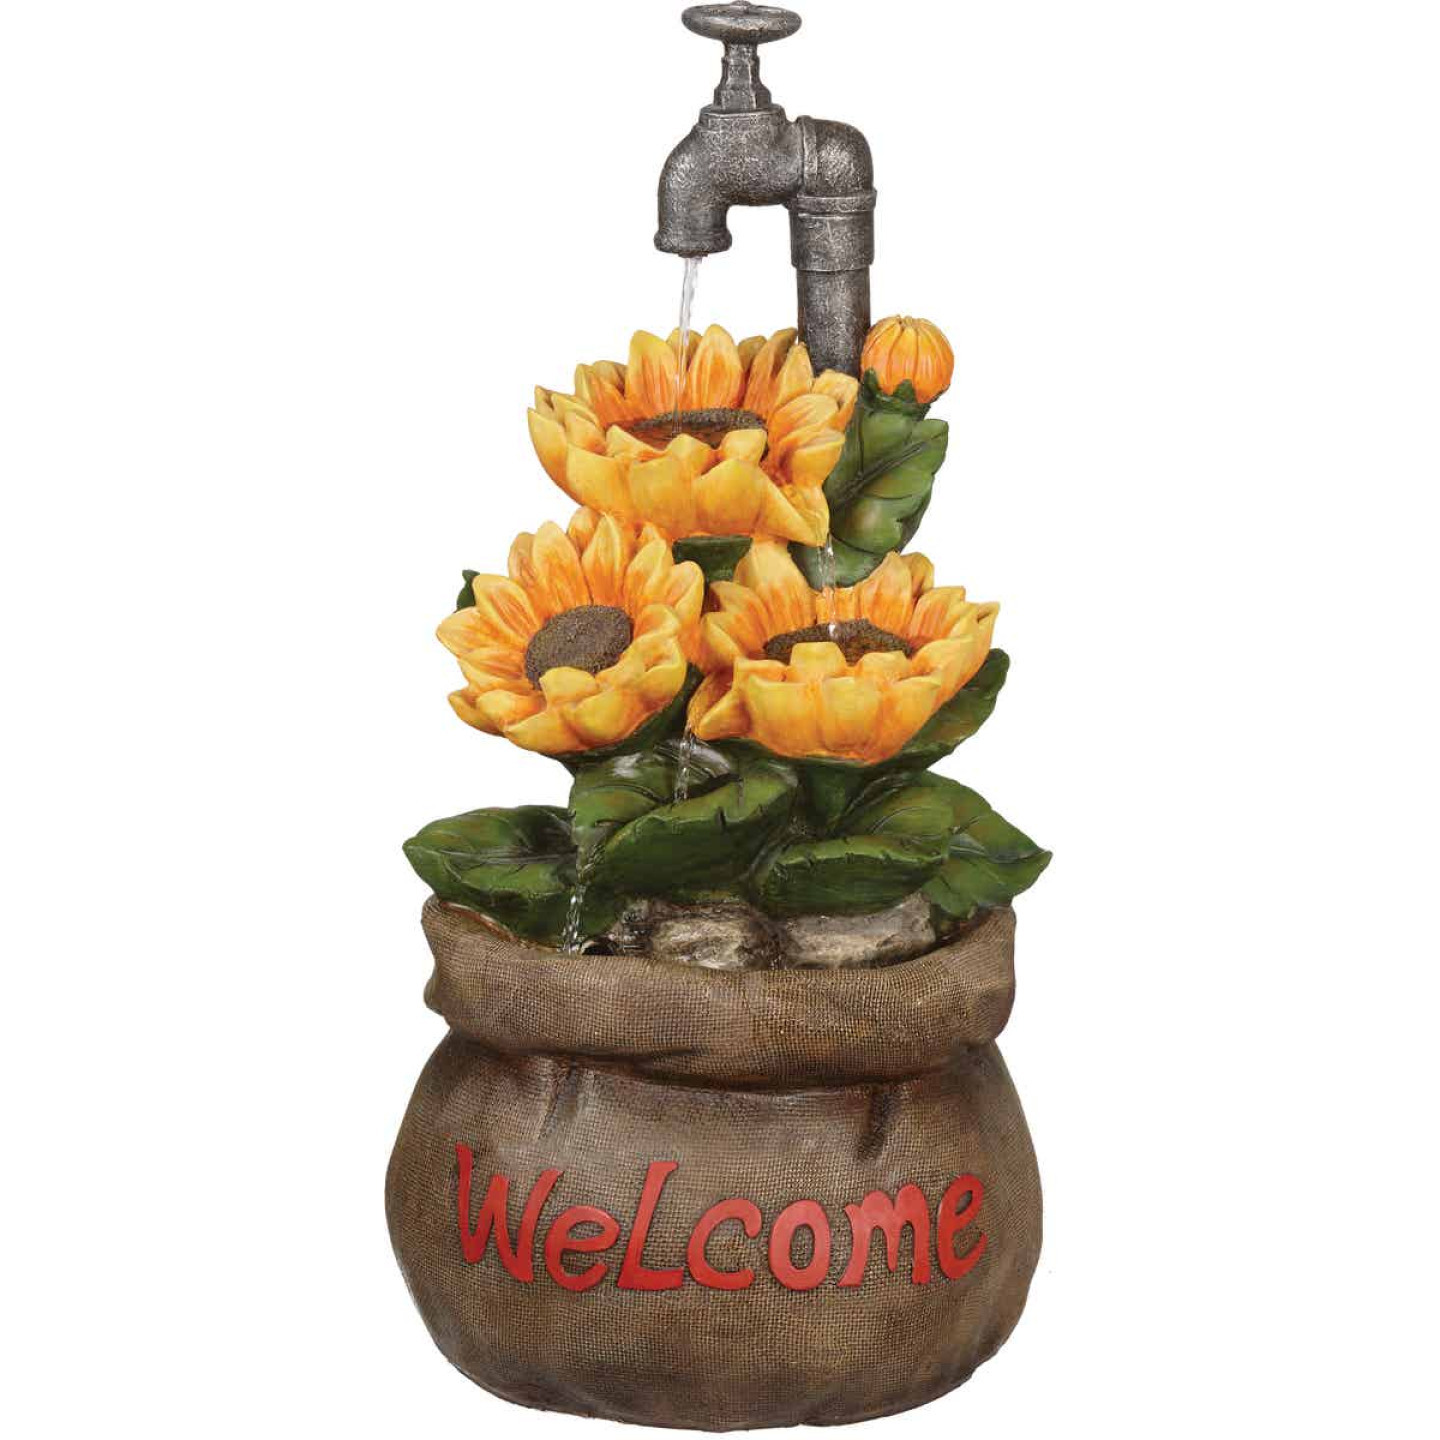 Best Garden 13 In. W. x 28 In. H. x 13 In. L. Polyresin Sunflower Fountain Image 3